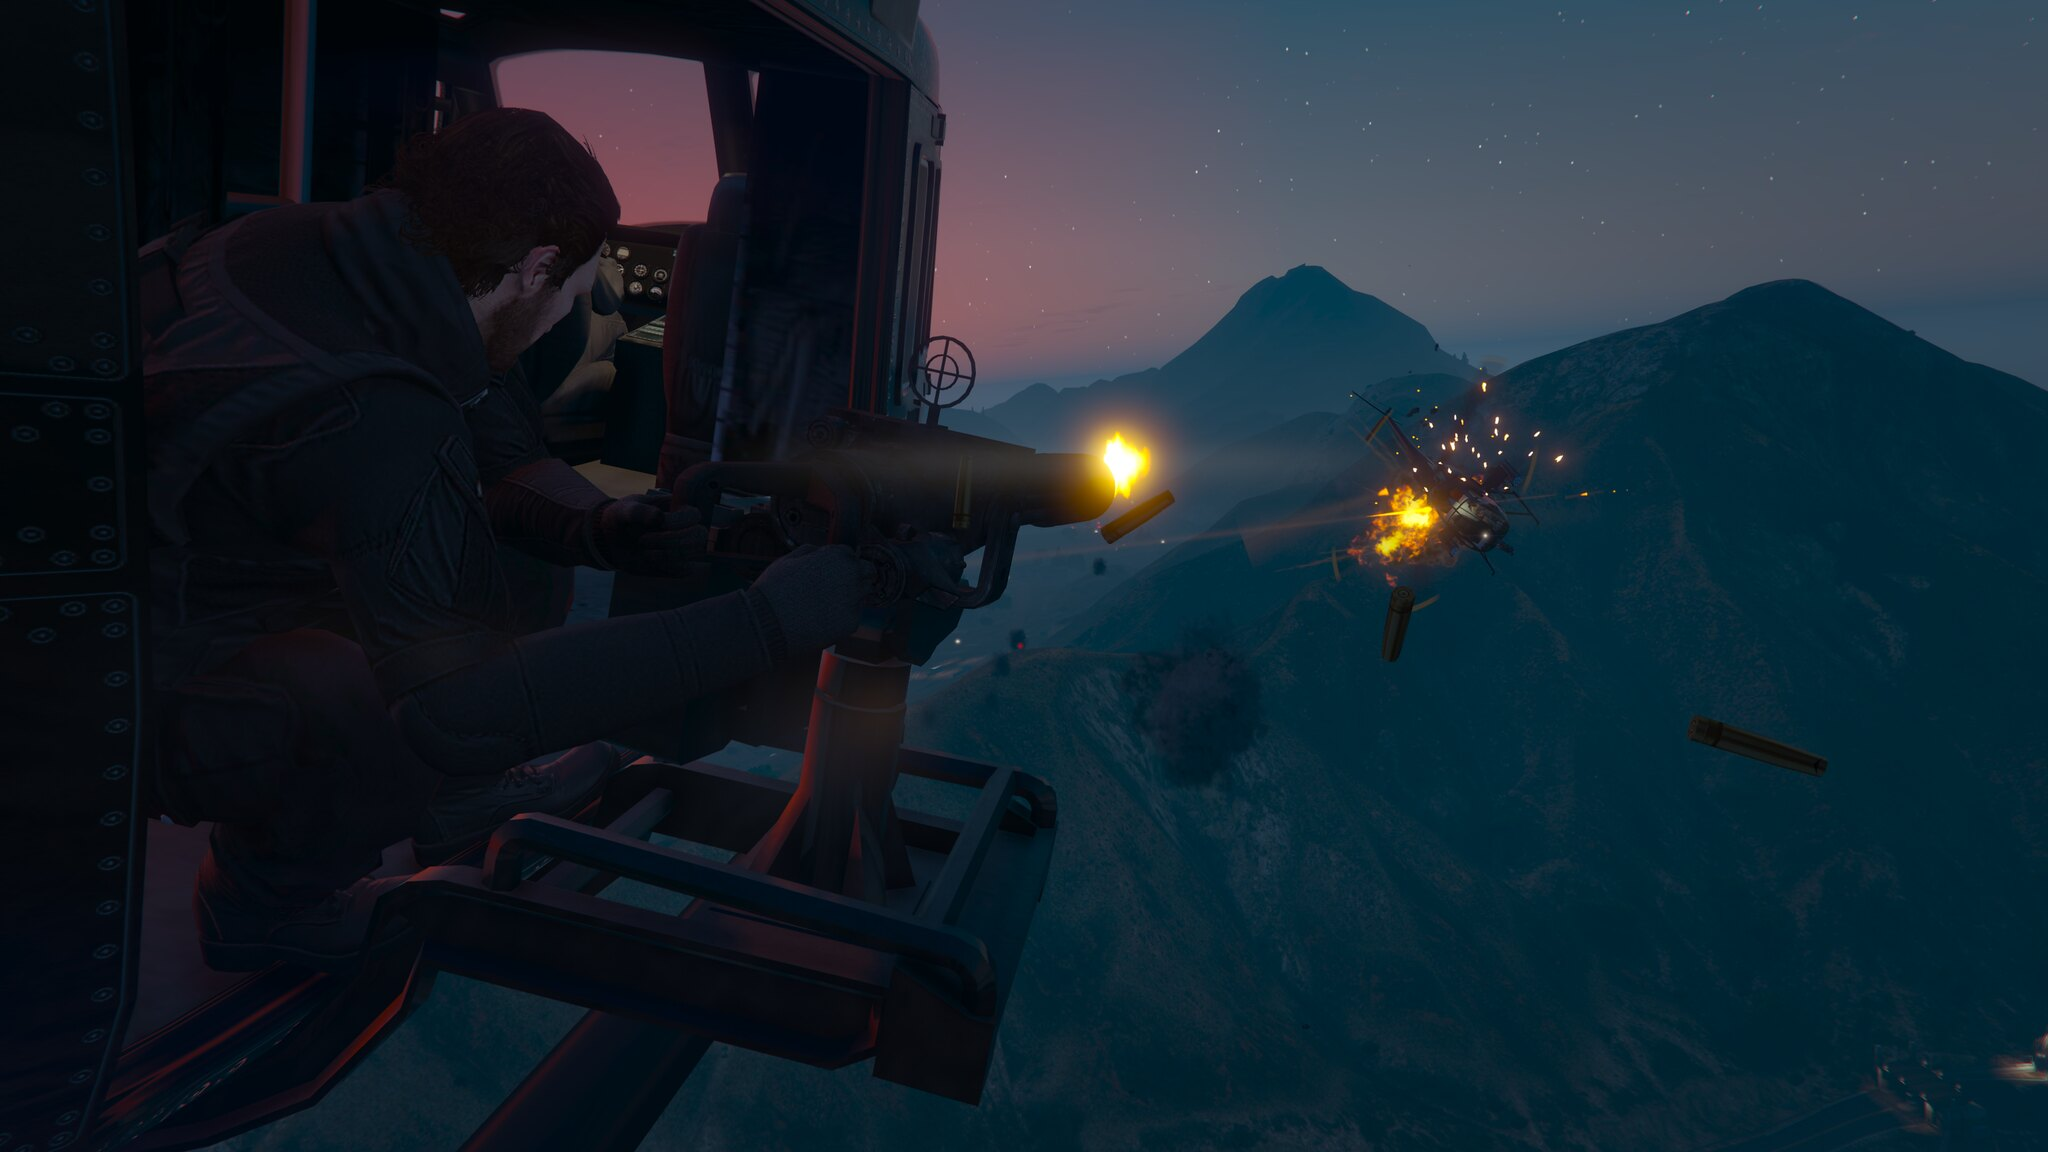 GTA V Screenshots (Official)   - Page 2 20472770056_8226bfb891_k